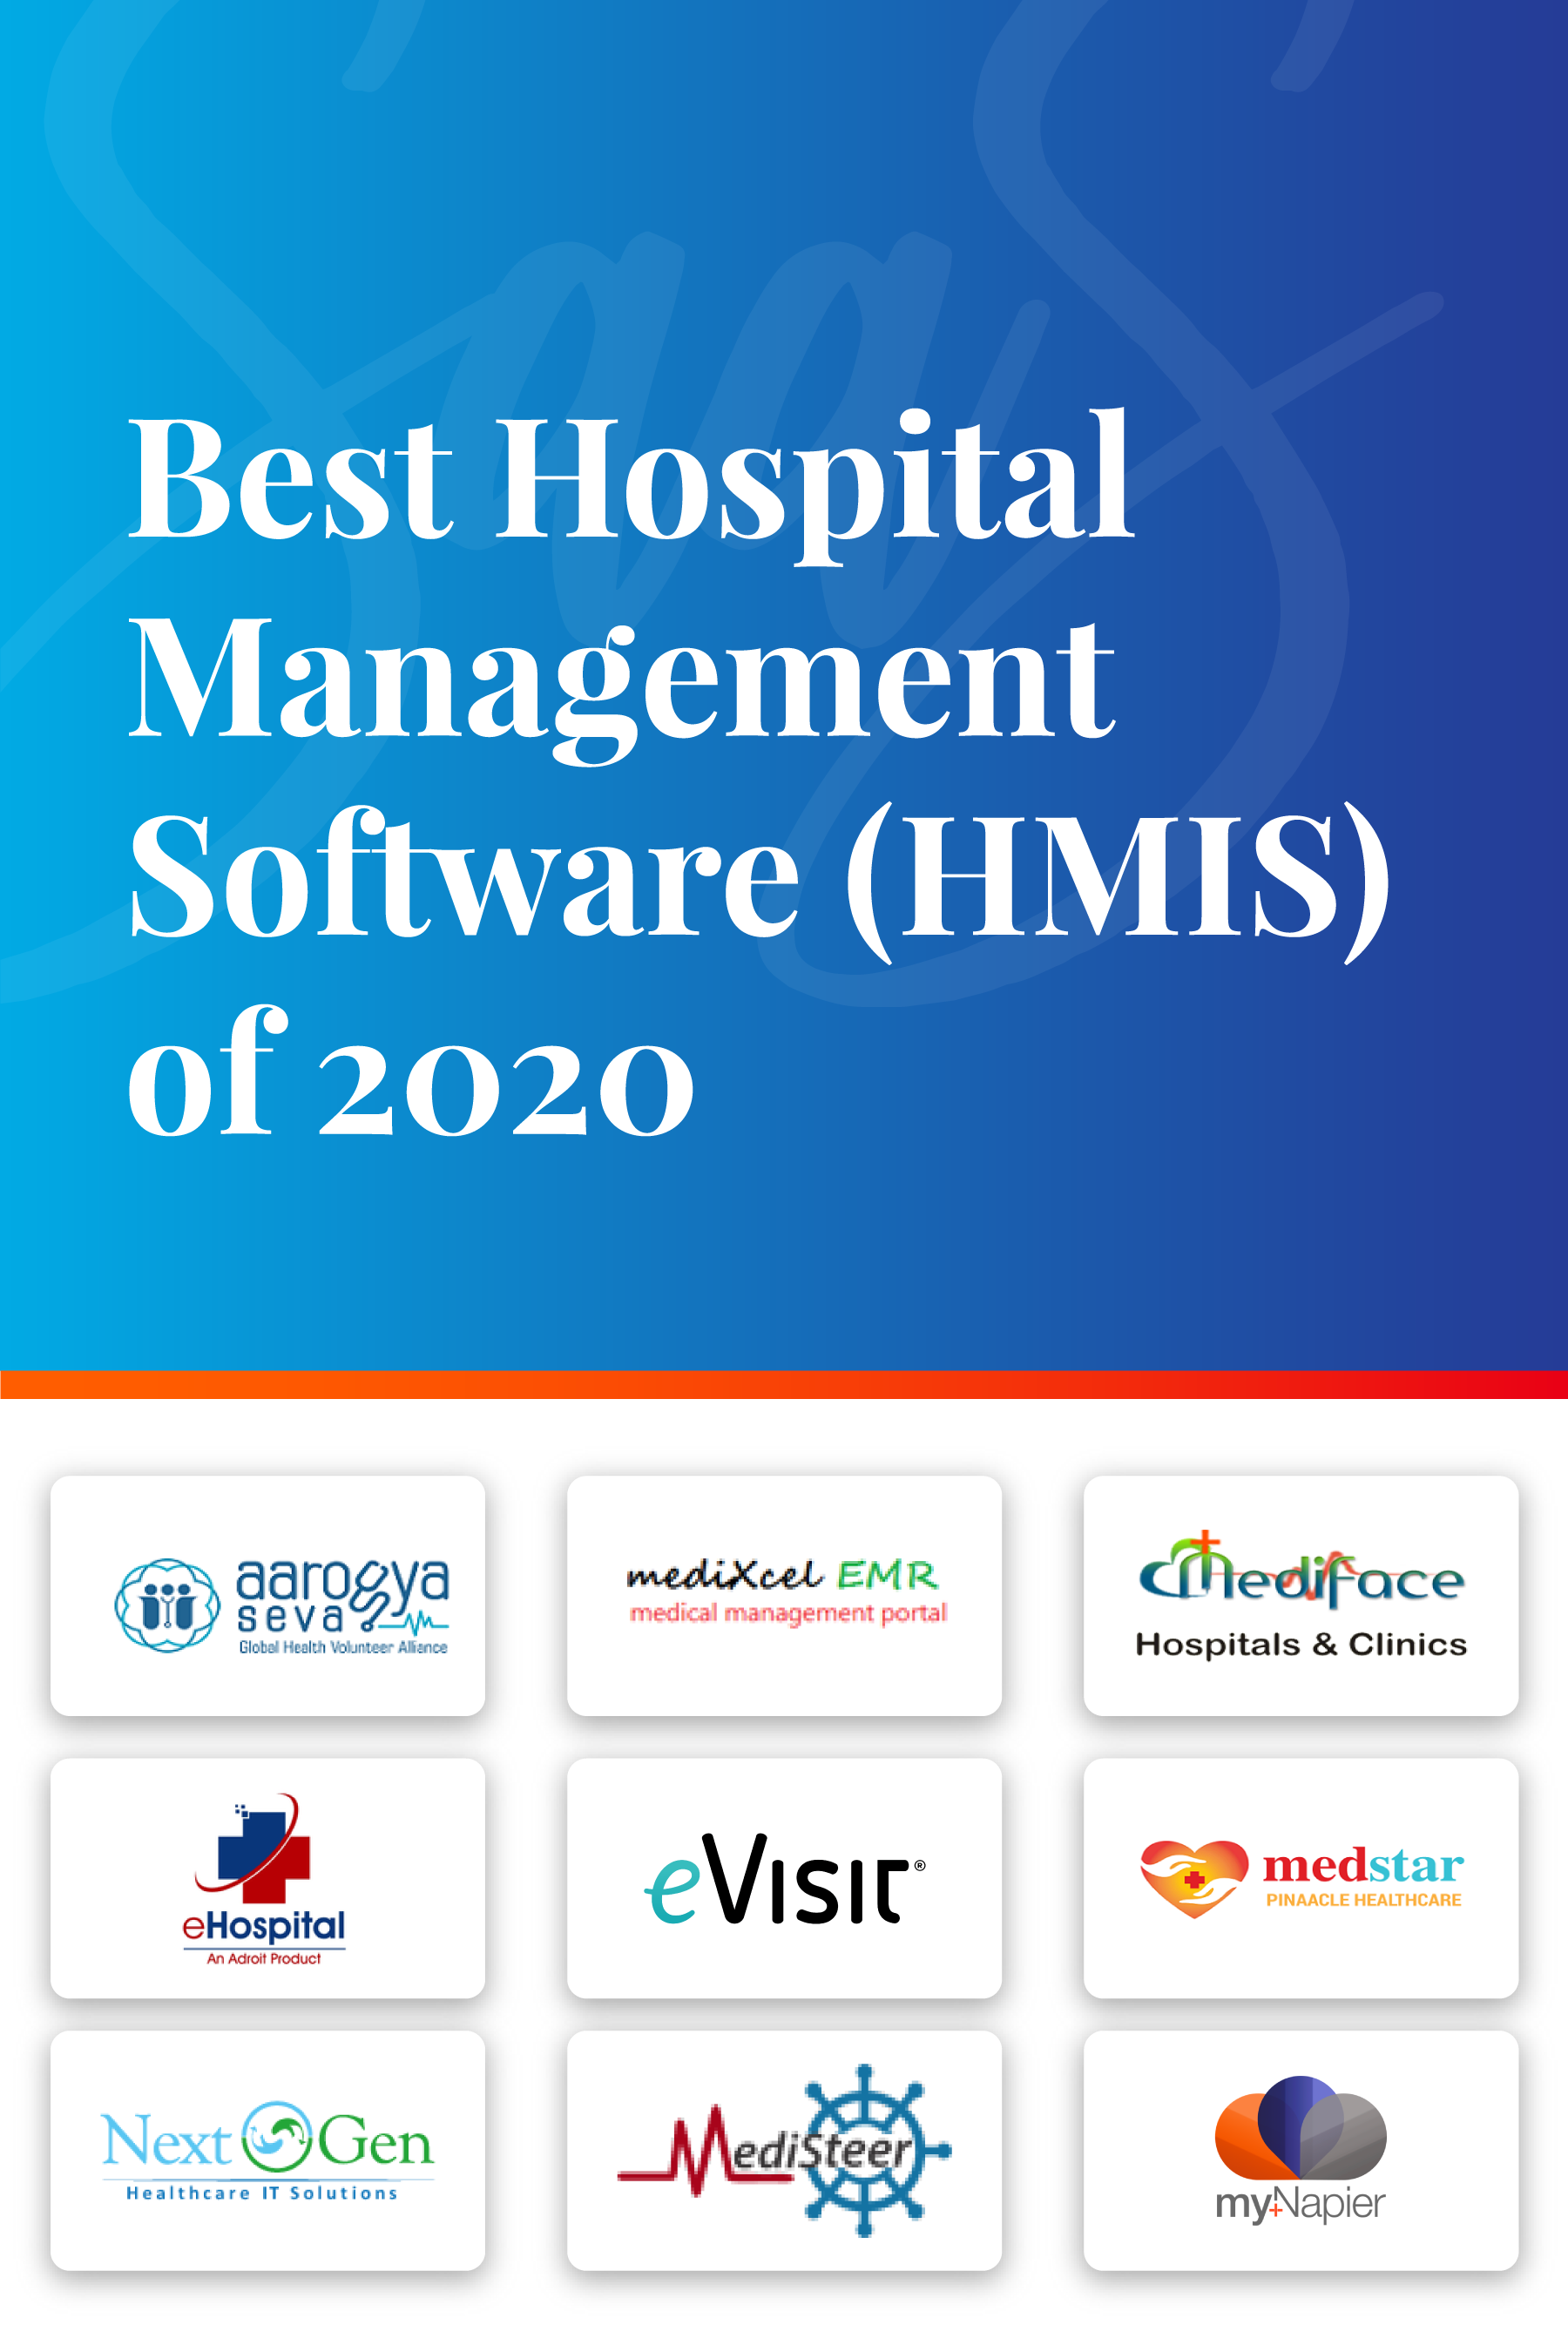 The 10 Best Hospital Management Software Hmis Of 2020 Hospitality Management Best Hospitals Medication Management